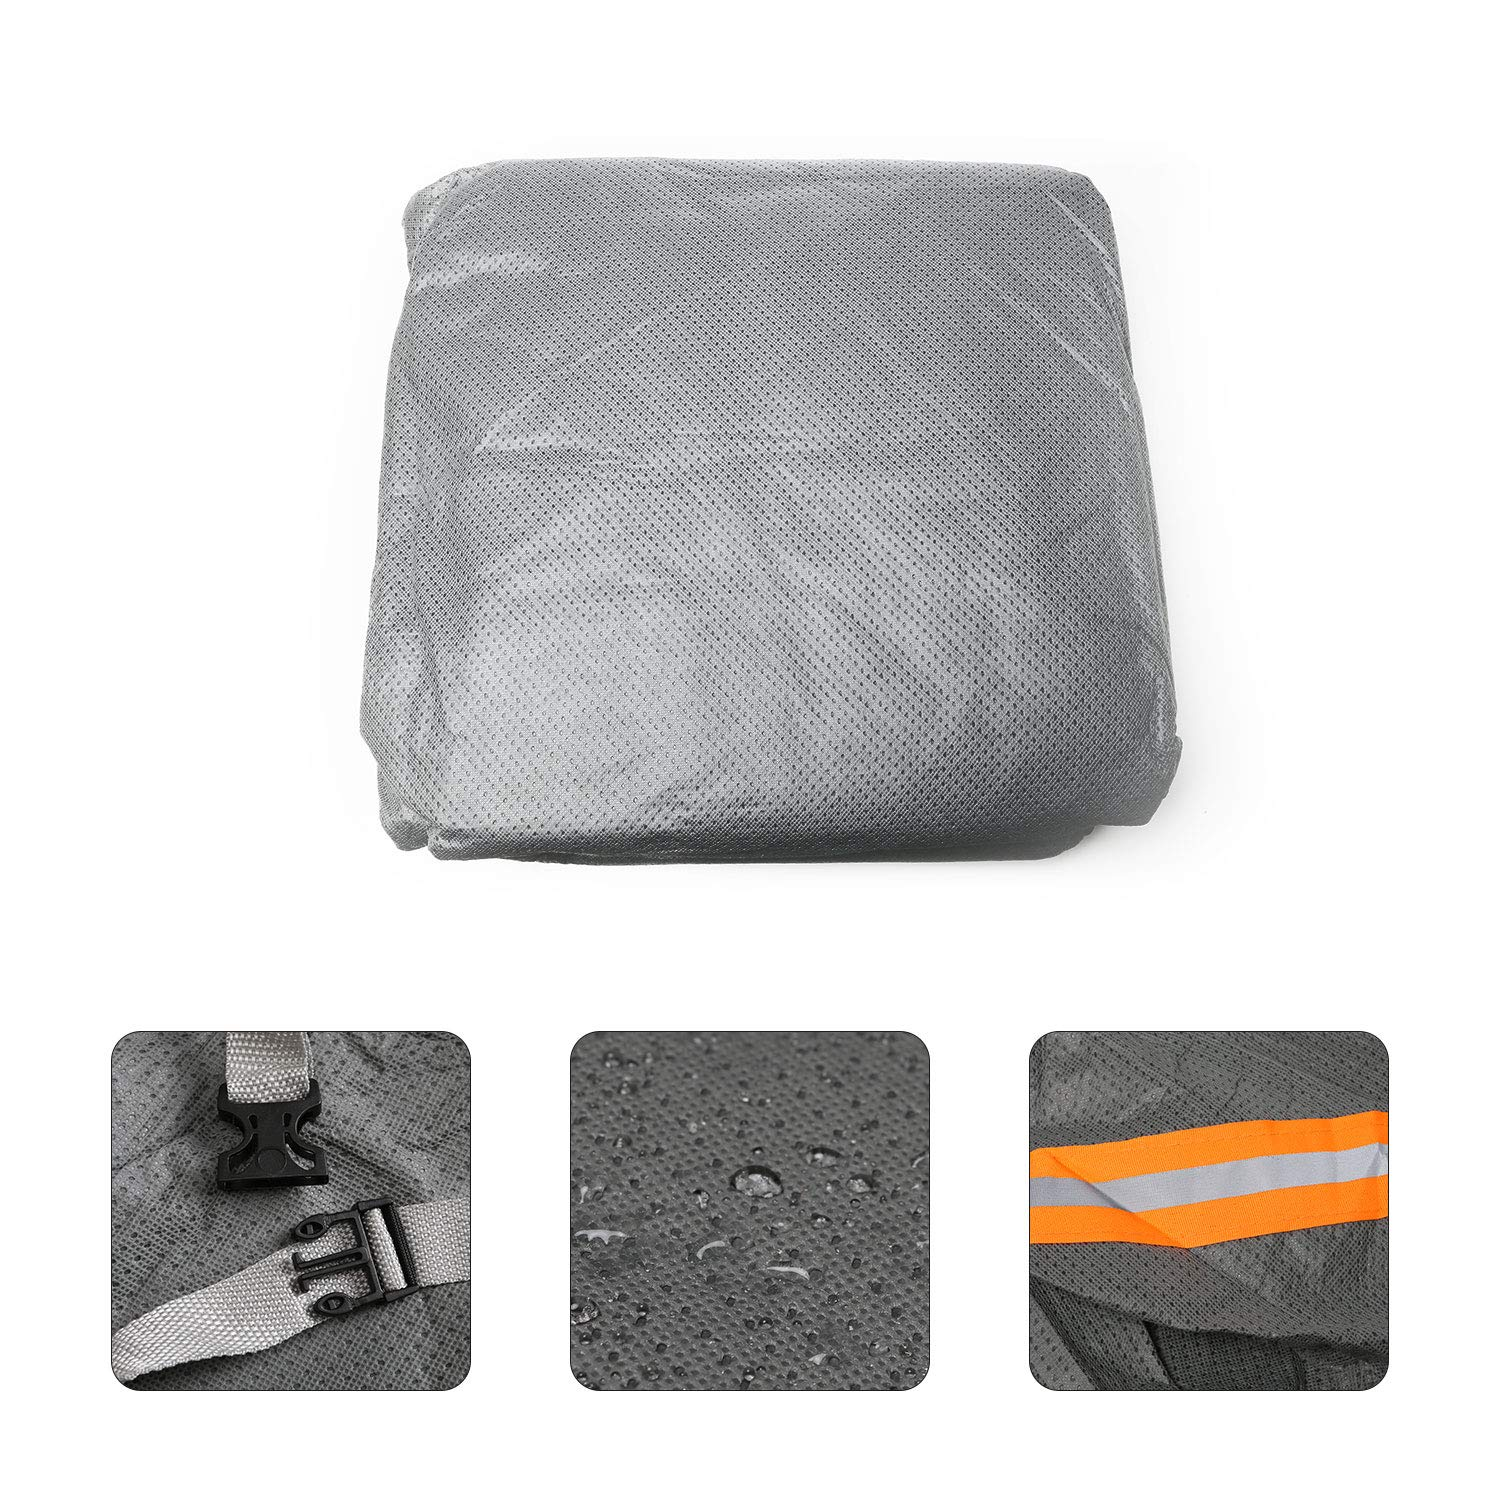 Odthelda Jeep Car Cover 5 Layers for Jeep Wrangler Waterproof Windproof Dustproof All Weather Prevention Car Cover